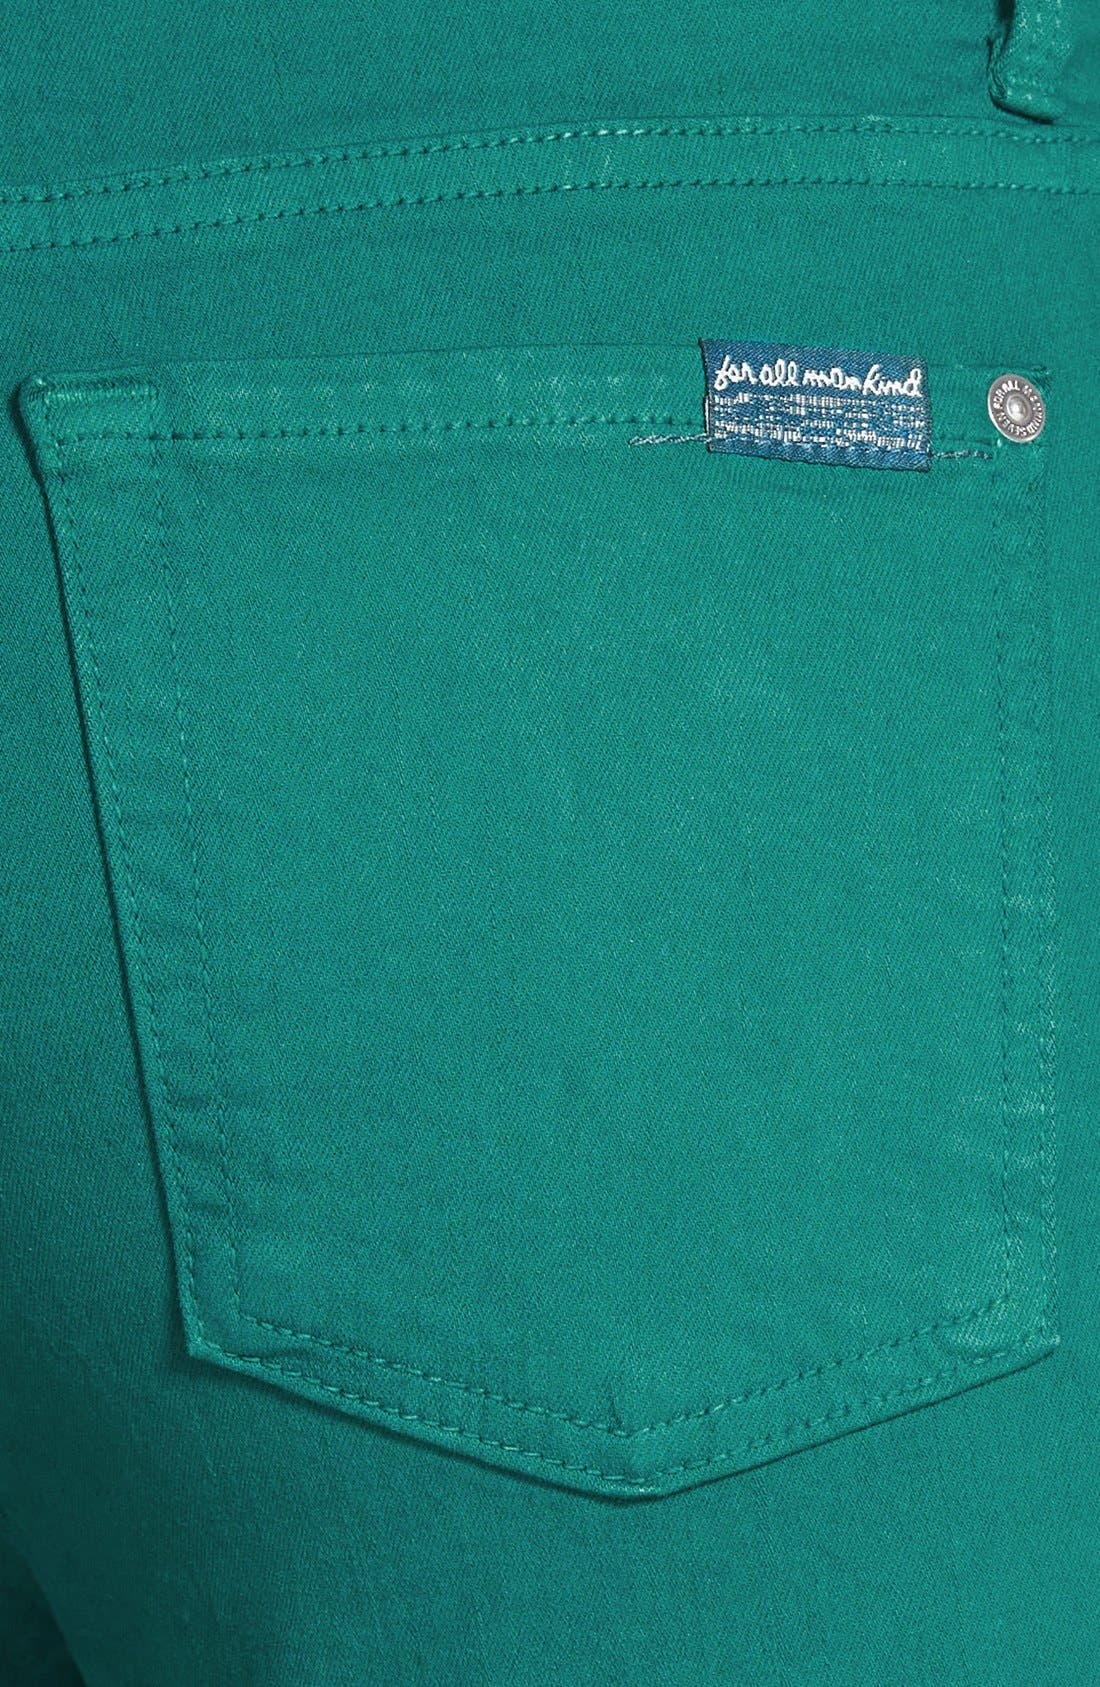 Alternate Image 3  - 7 For All Mankind® High Rise Ankle Skinny Jeans (Teal Green)